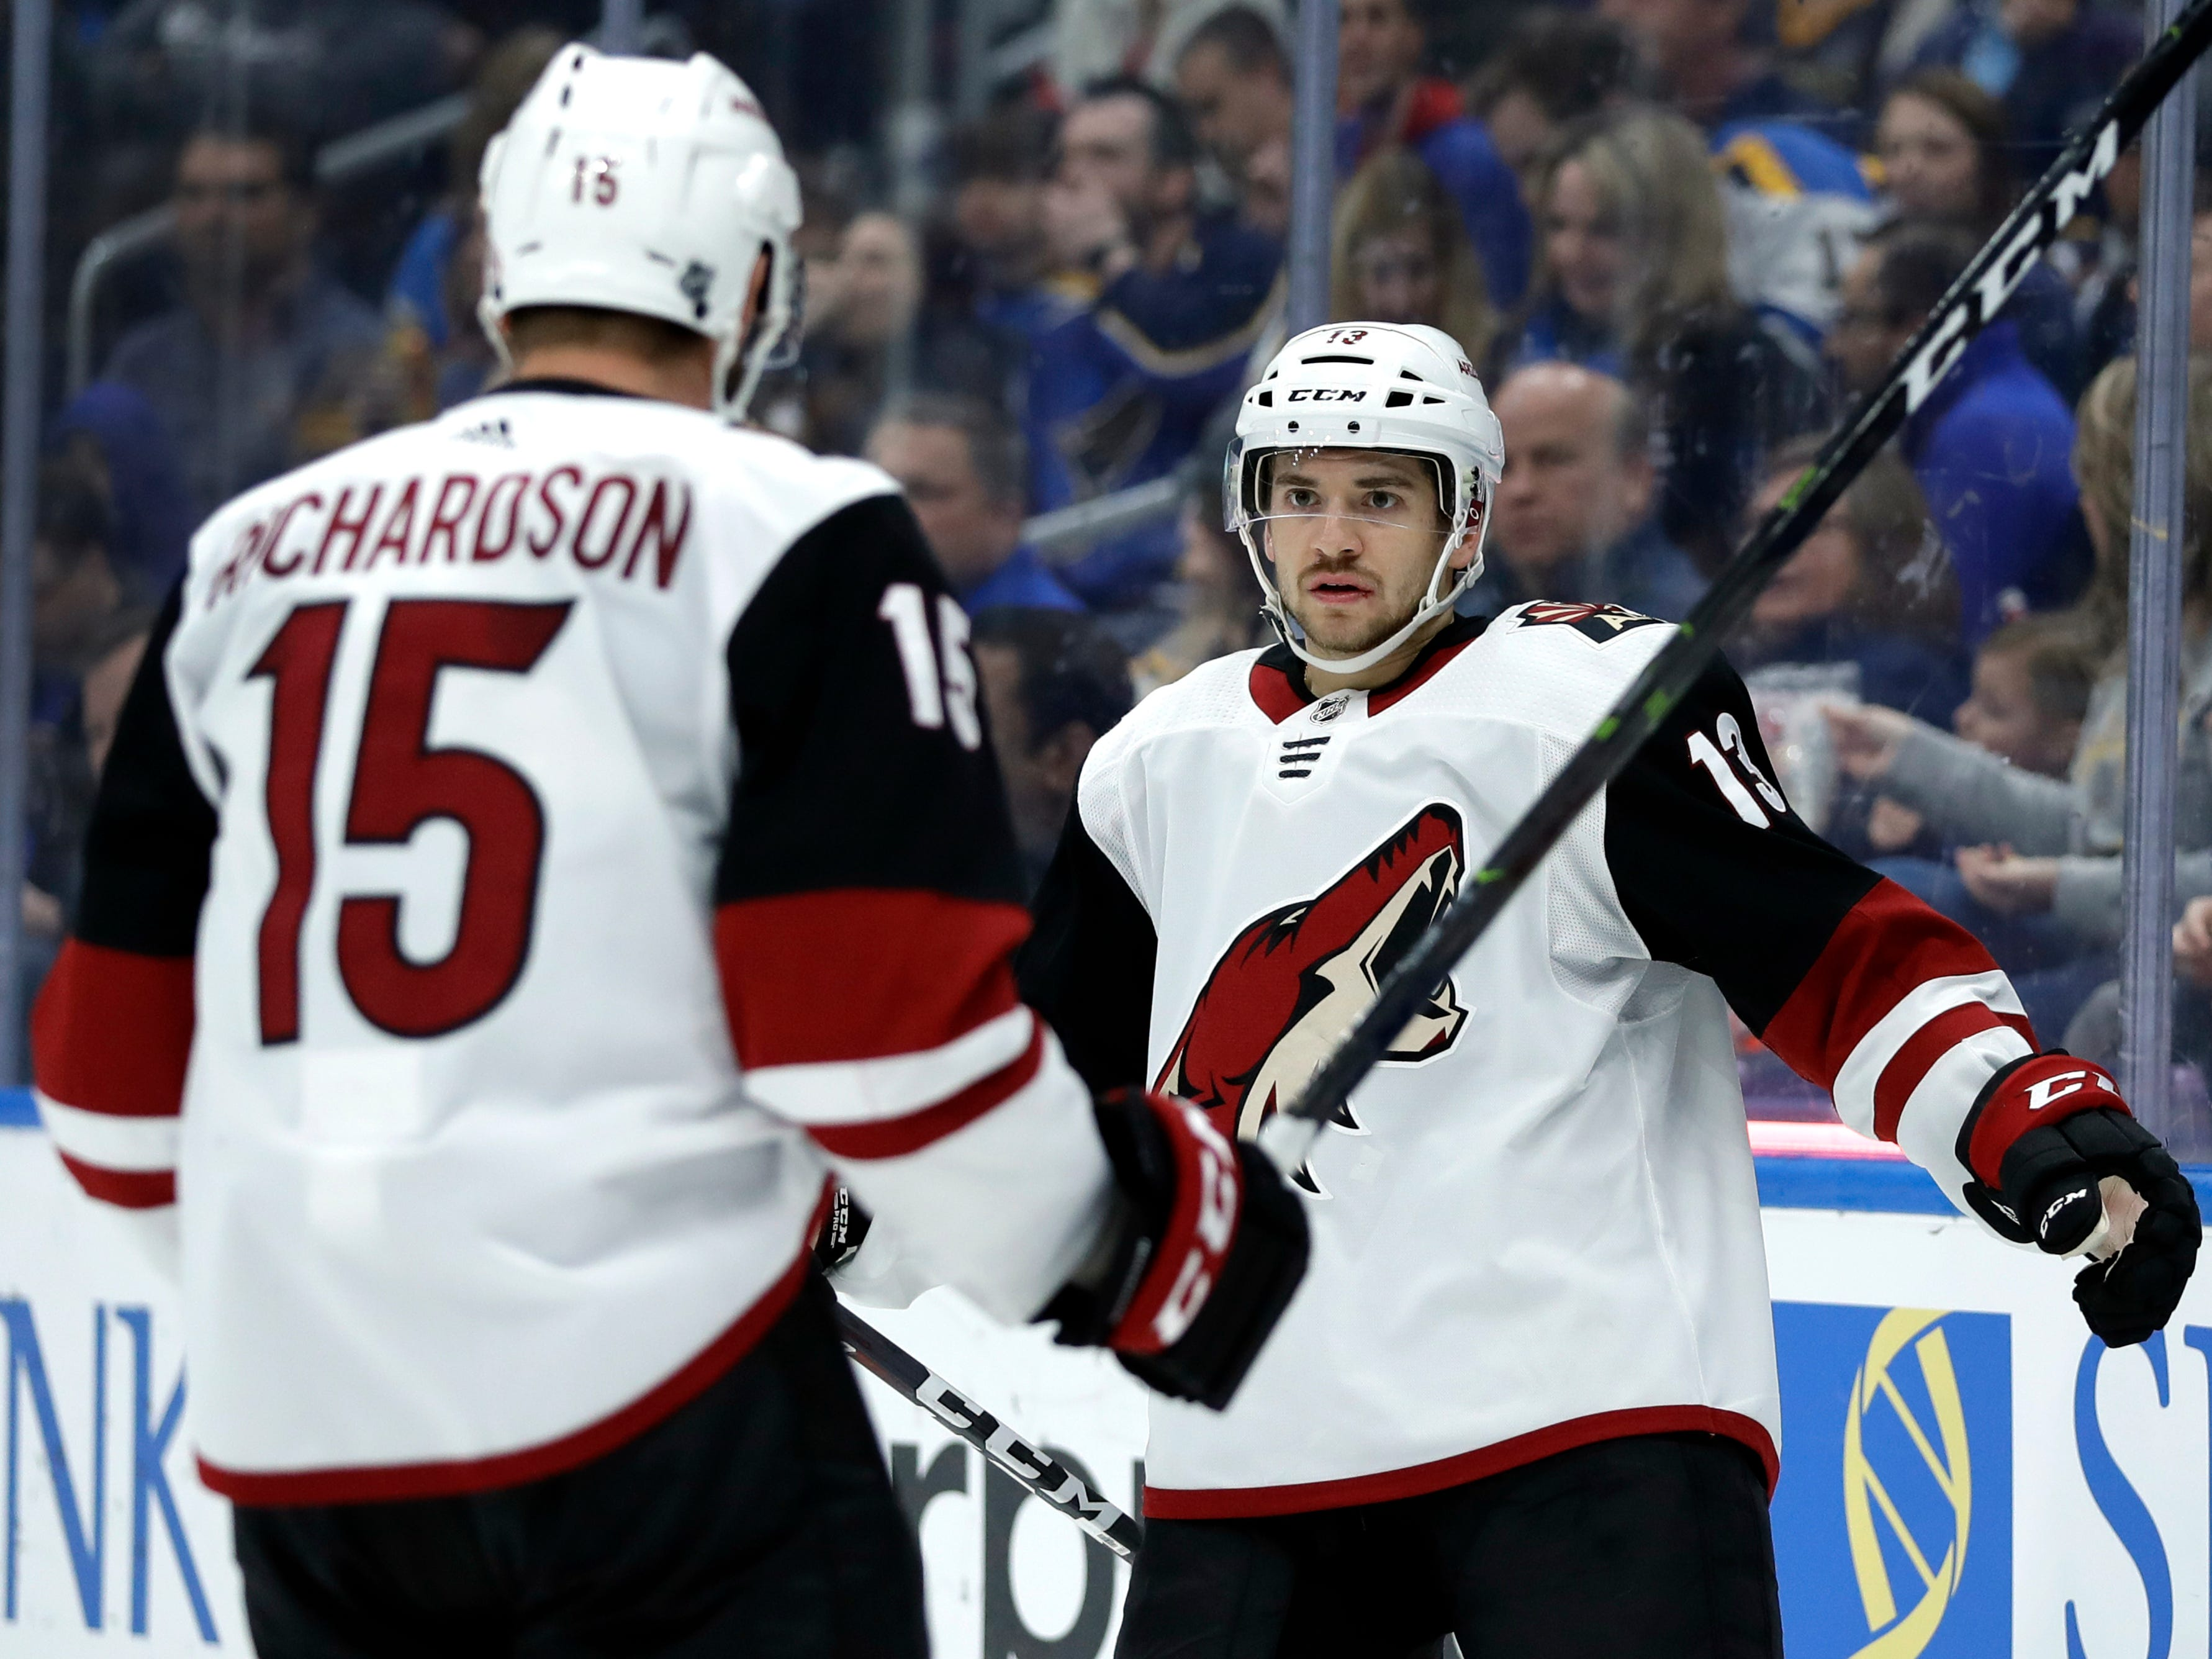 Arizona Coyotes' Vinnie Hinostroza, right, is congratulated by Brad Richardson after scoring during the third period of an NHL hockey game against the St. Louis Blues, Tuesday, March 12, 2019, in St. Louis. The Coyotes won 3-1.